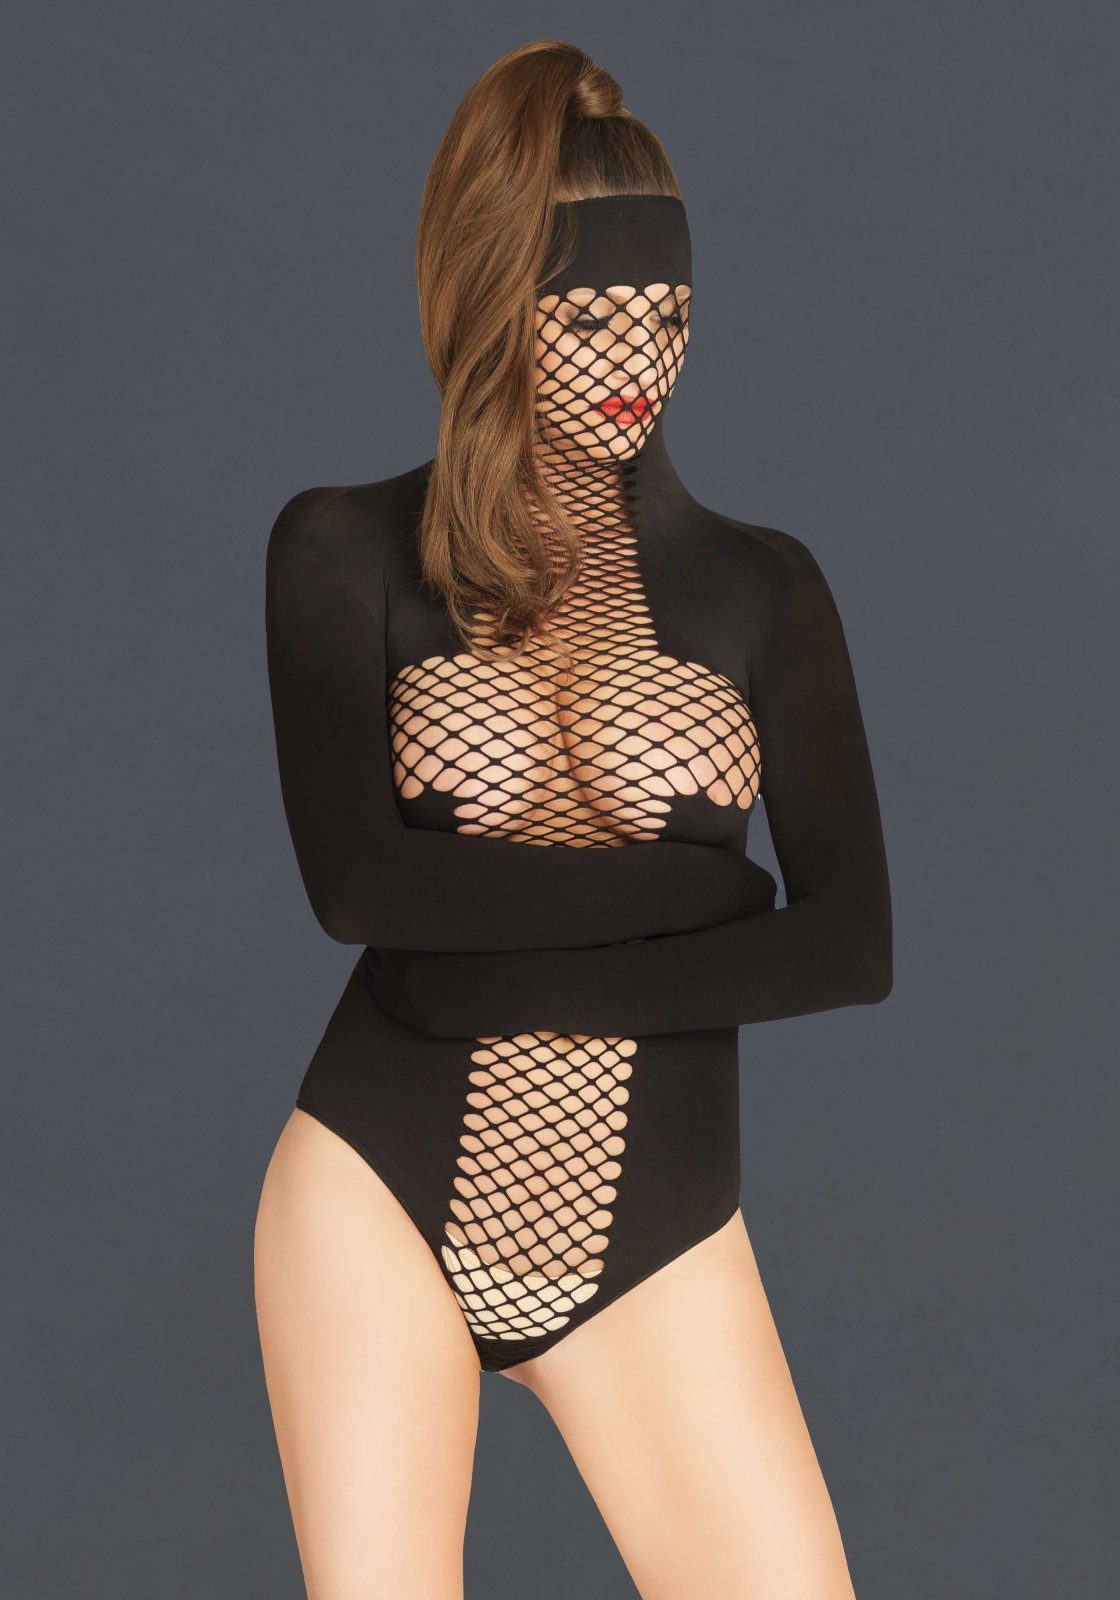 Opaque and net masked teddy with wrap around restraint sleeves.